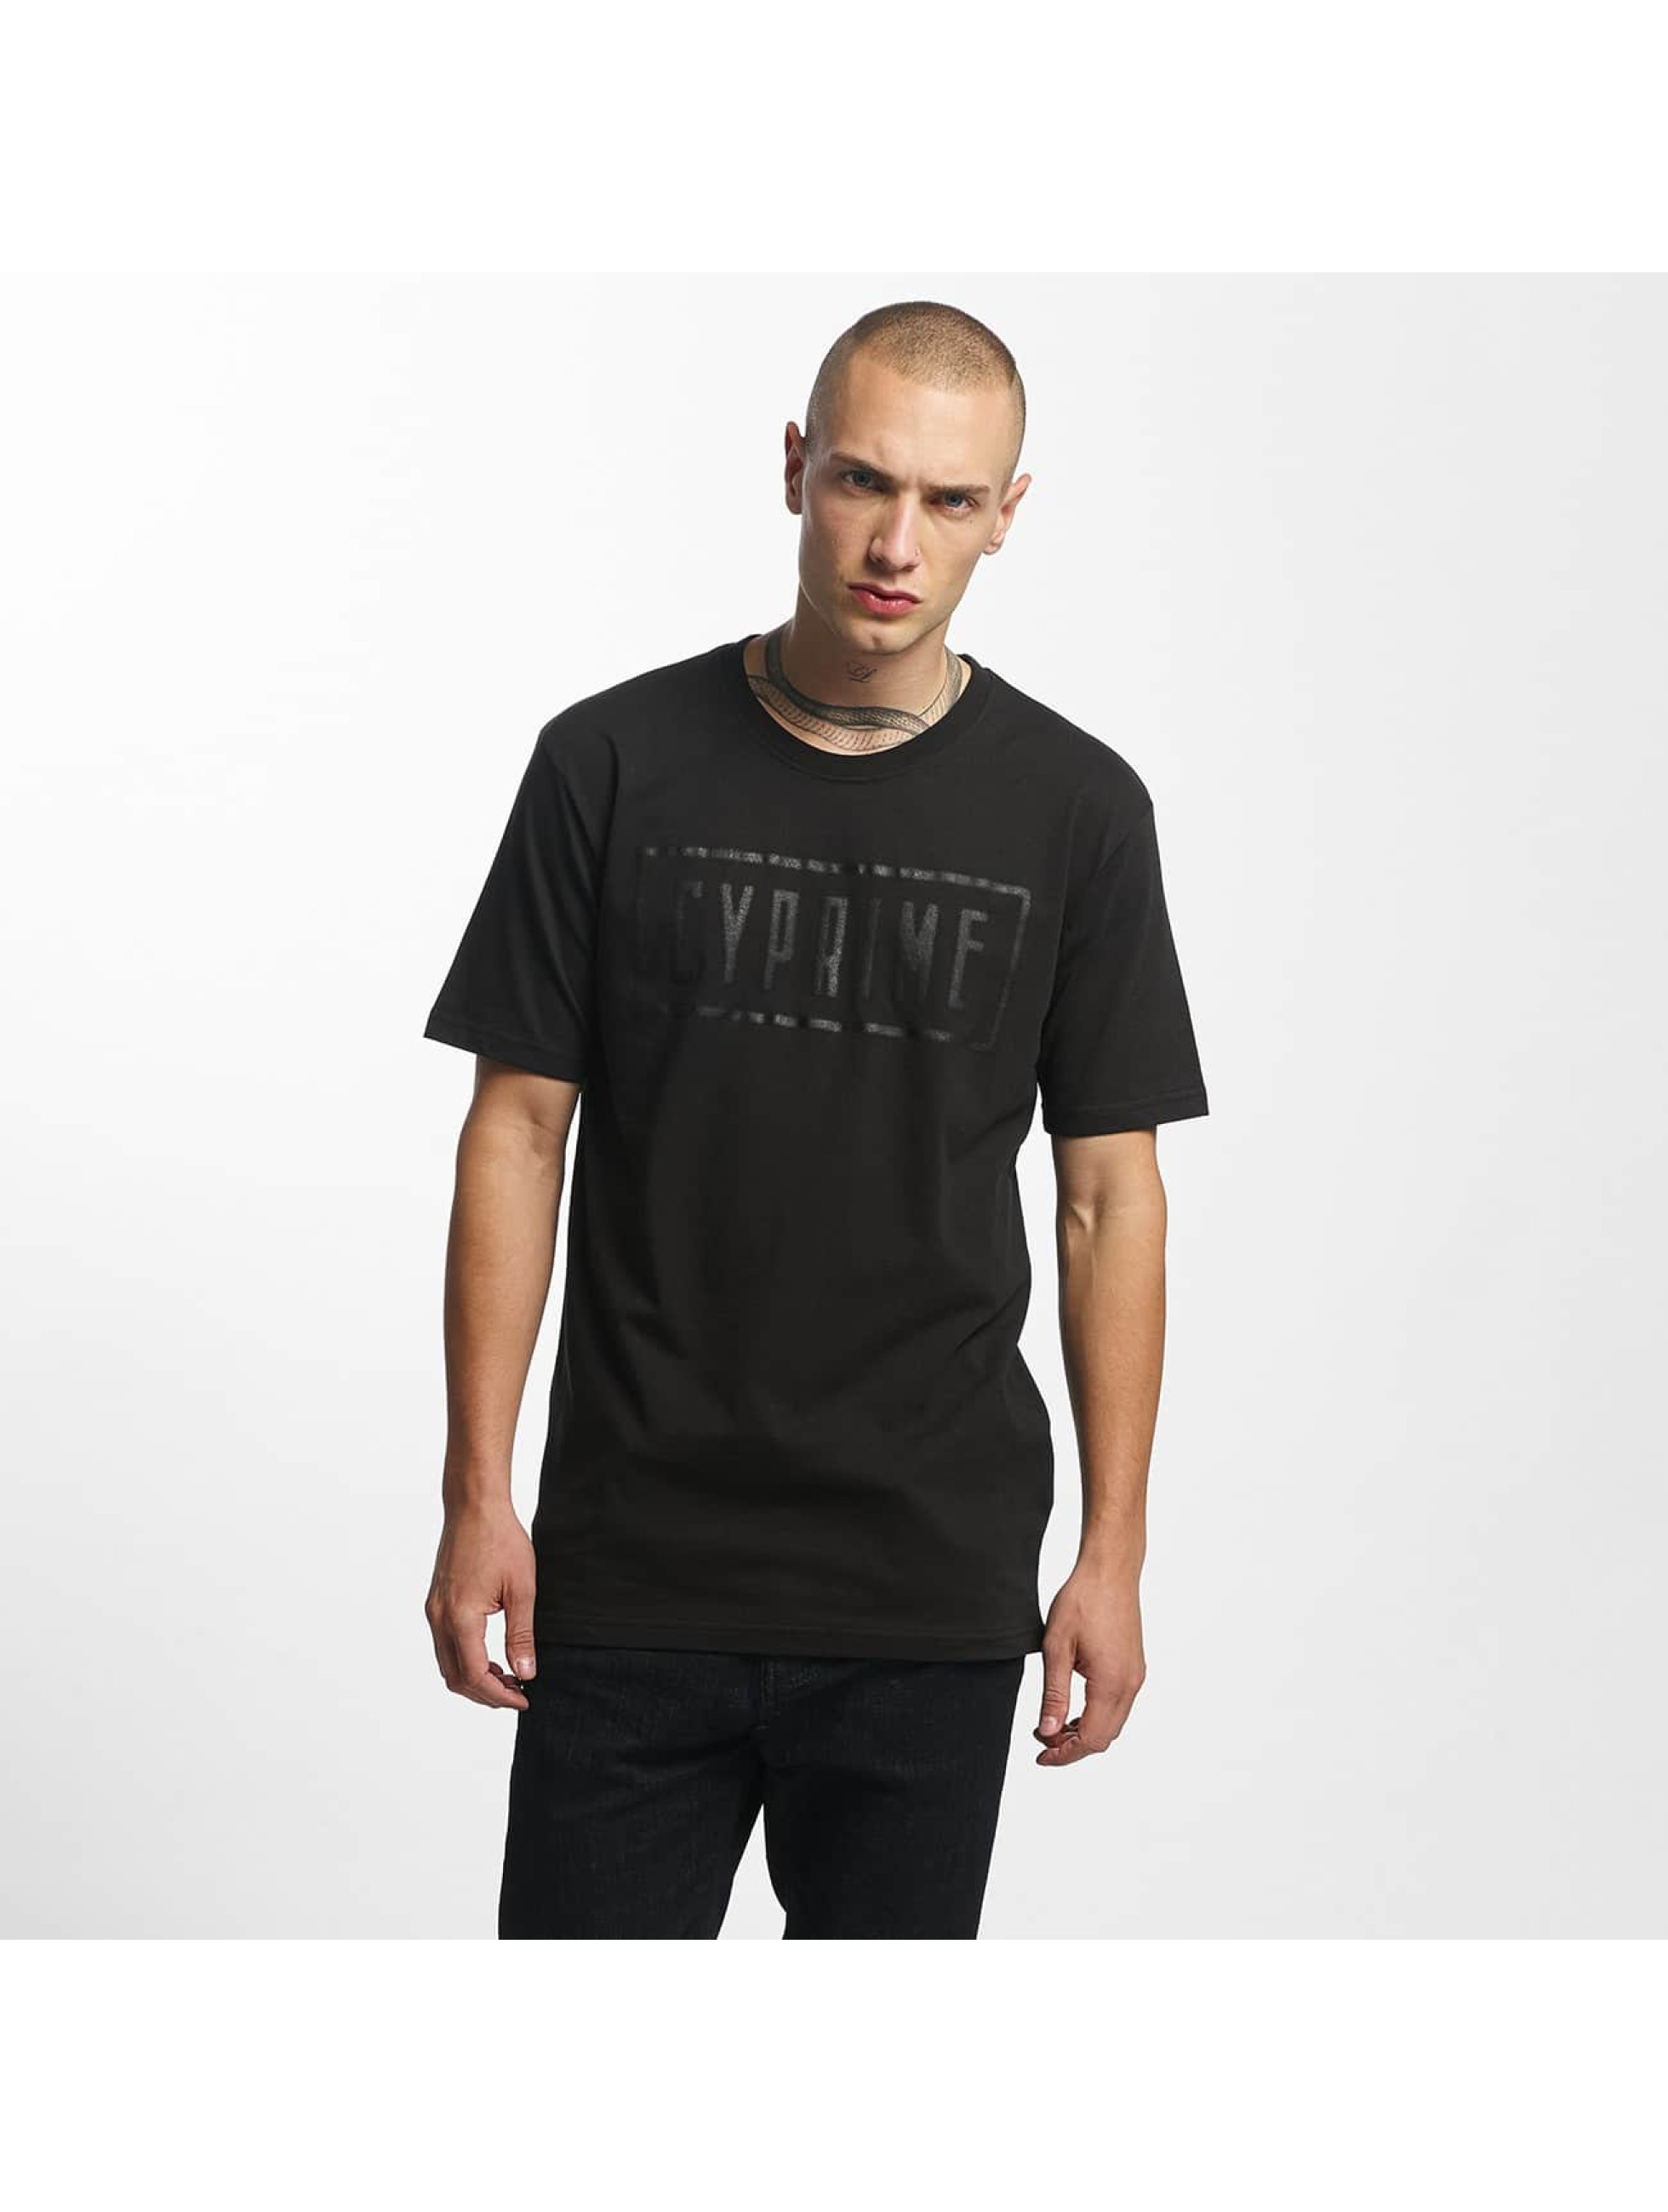 Cyprime / T-Shirt Astatine in black XL